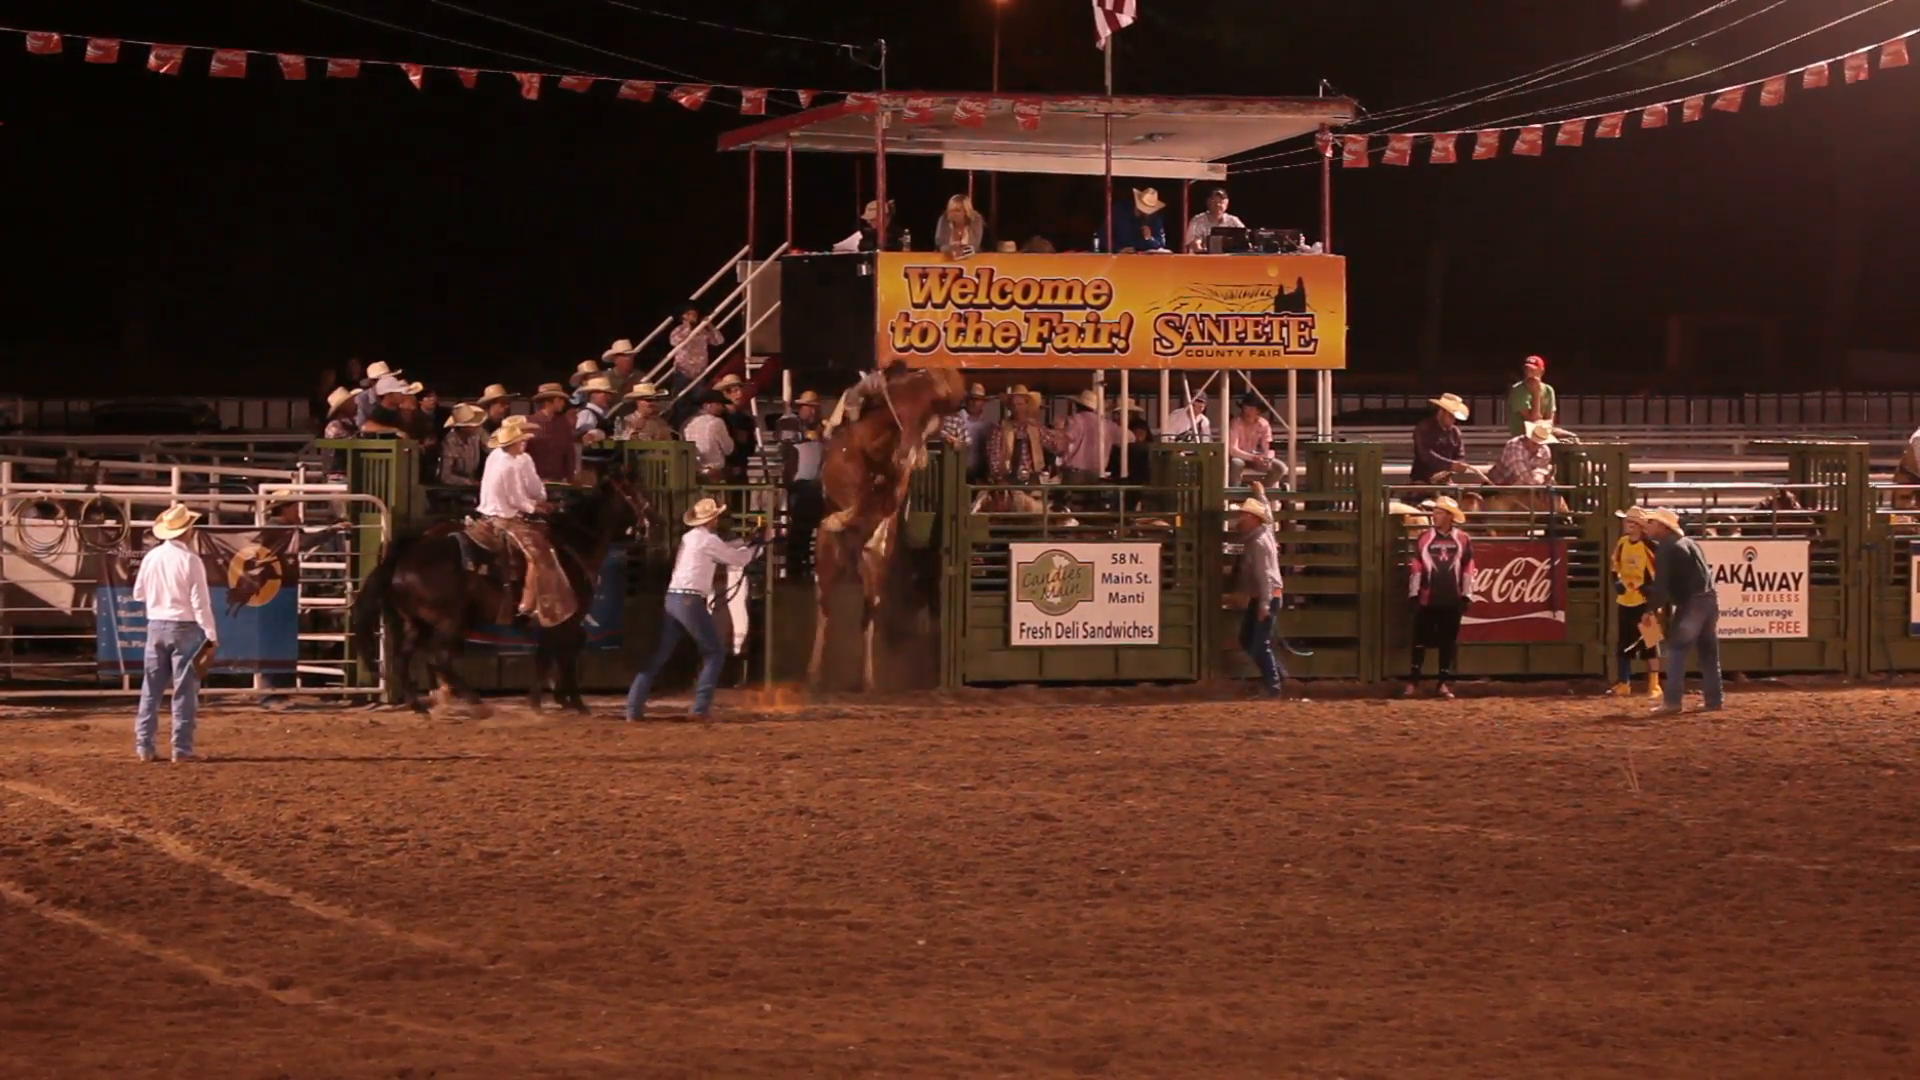 Rodeo saddle bronco horse ride gets rough ride out of chute to score high.  Night time event in central Utah. Cowboy rides hard riding bucking bronc  during PlusPng.com  - Rodeo PNG HD